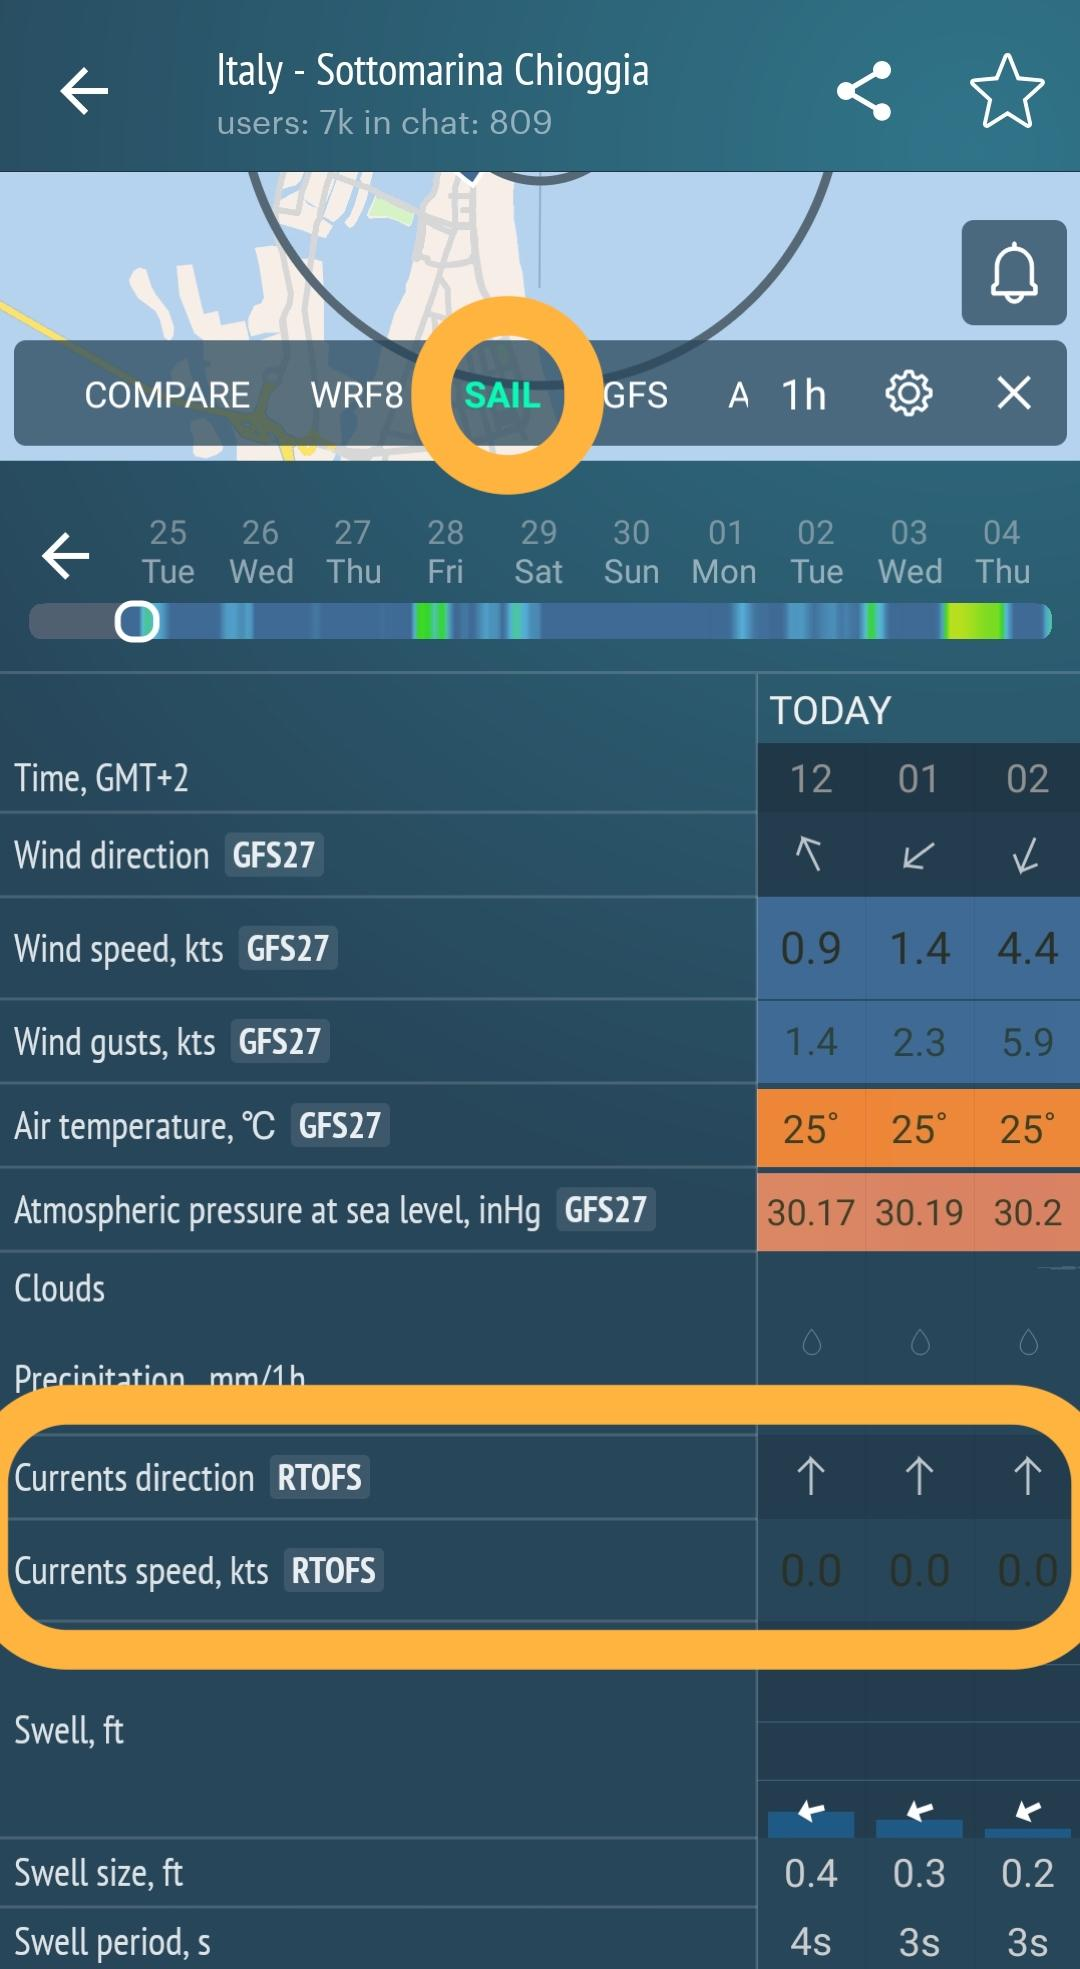 RTOFS currents' forecast